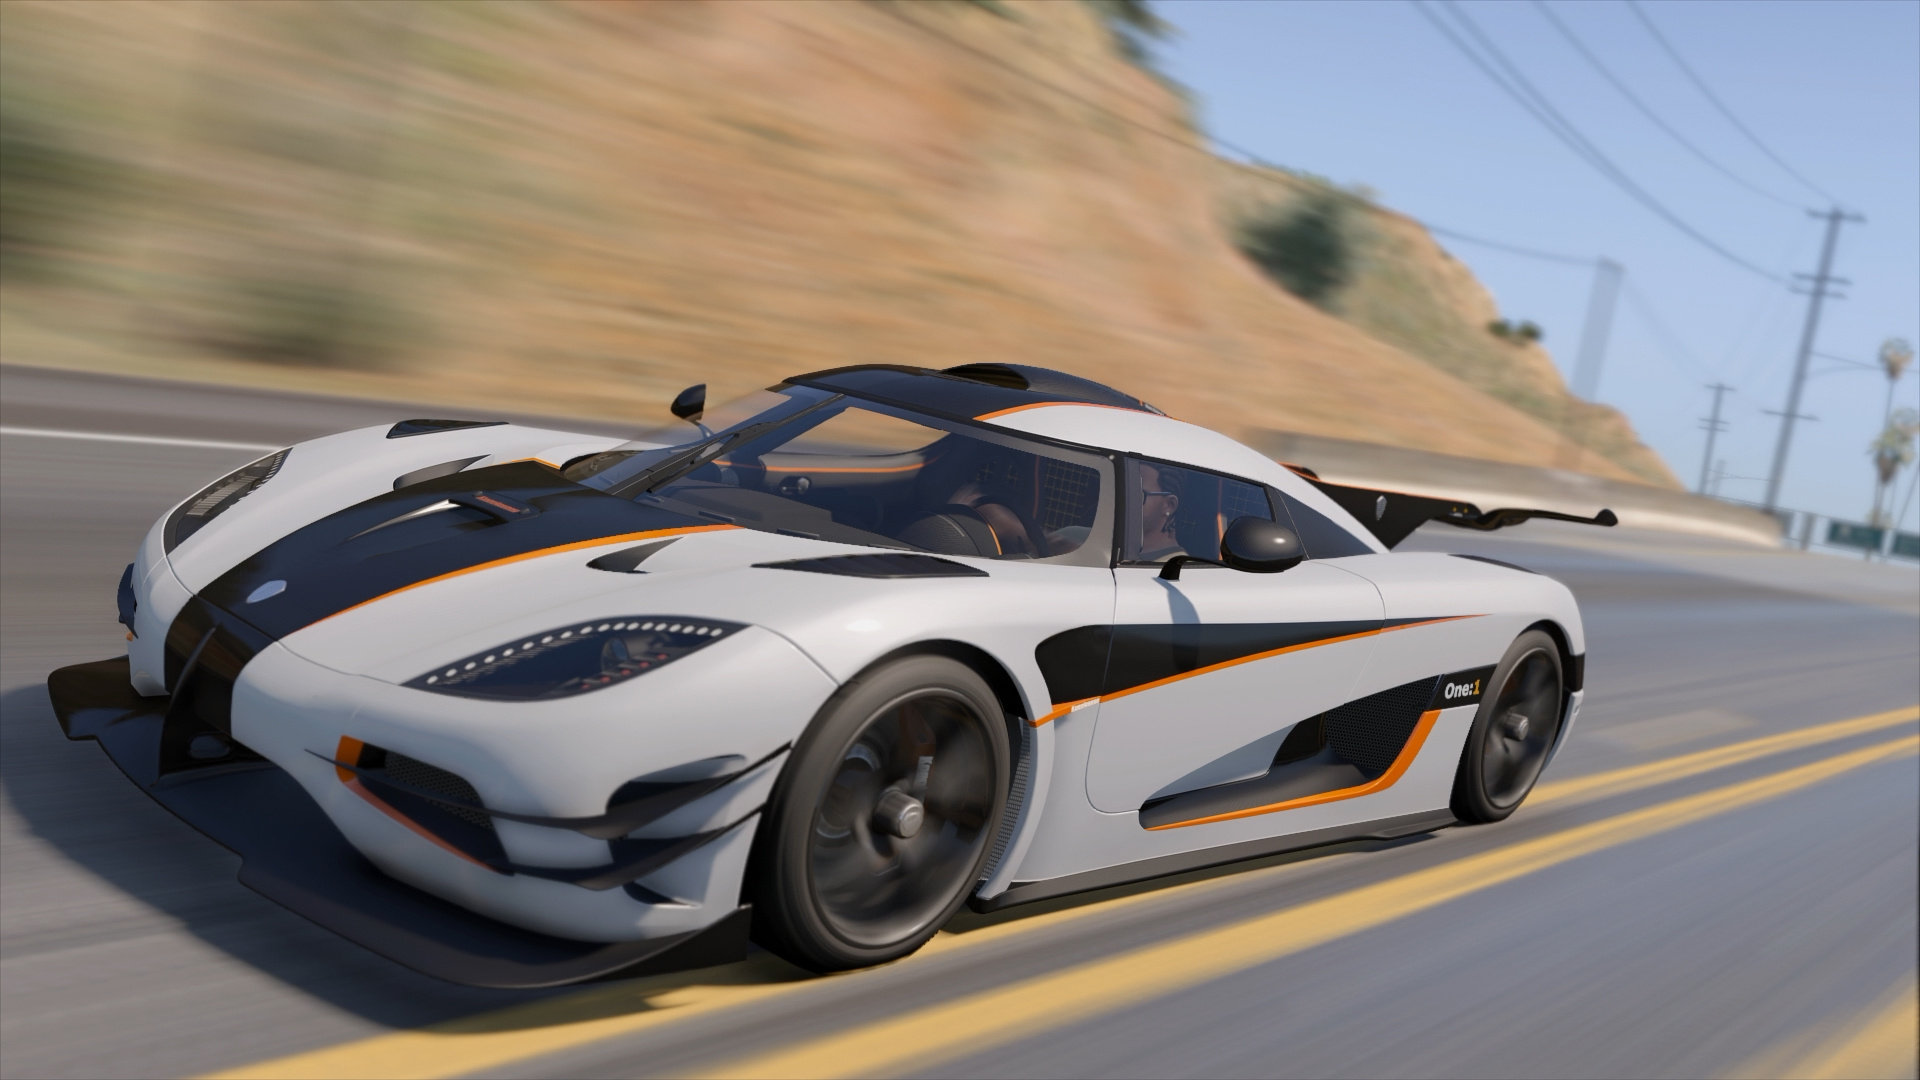 2015 Koenigsegg Agera One 1 Add On Dials Spyder Animated Gta5 Mods Com